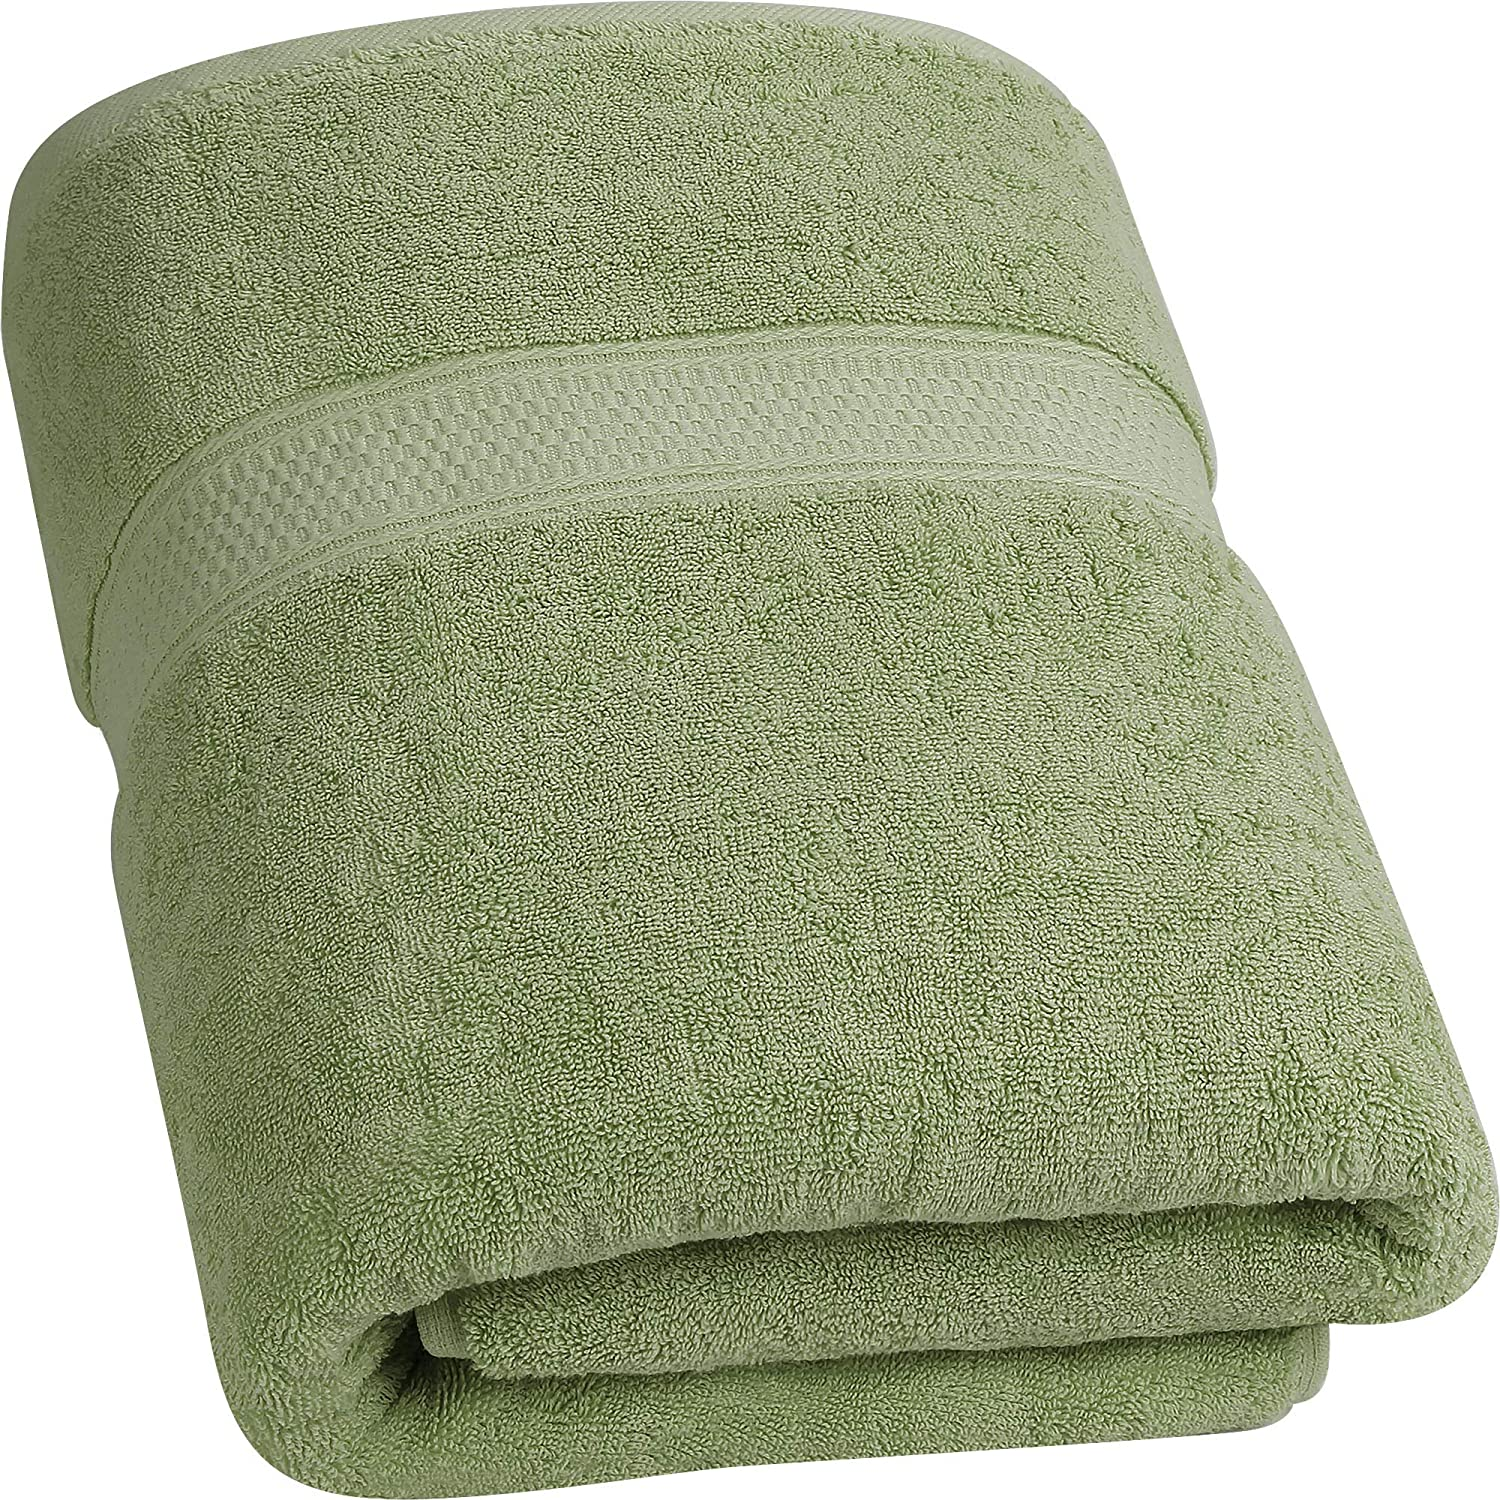 Utopia Towels - Luxurious Jumbo Bath Sheet (35 x 70 Inches, Sage Green) - 700 GSM 100% Ring Spun Cotton Highly Absorbent and Quick Dry Extra Large Bath Towel - Super Soft Hotel Quality Towel